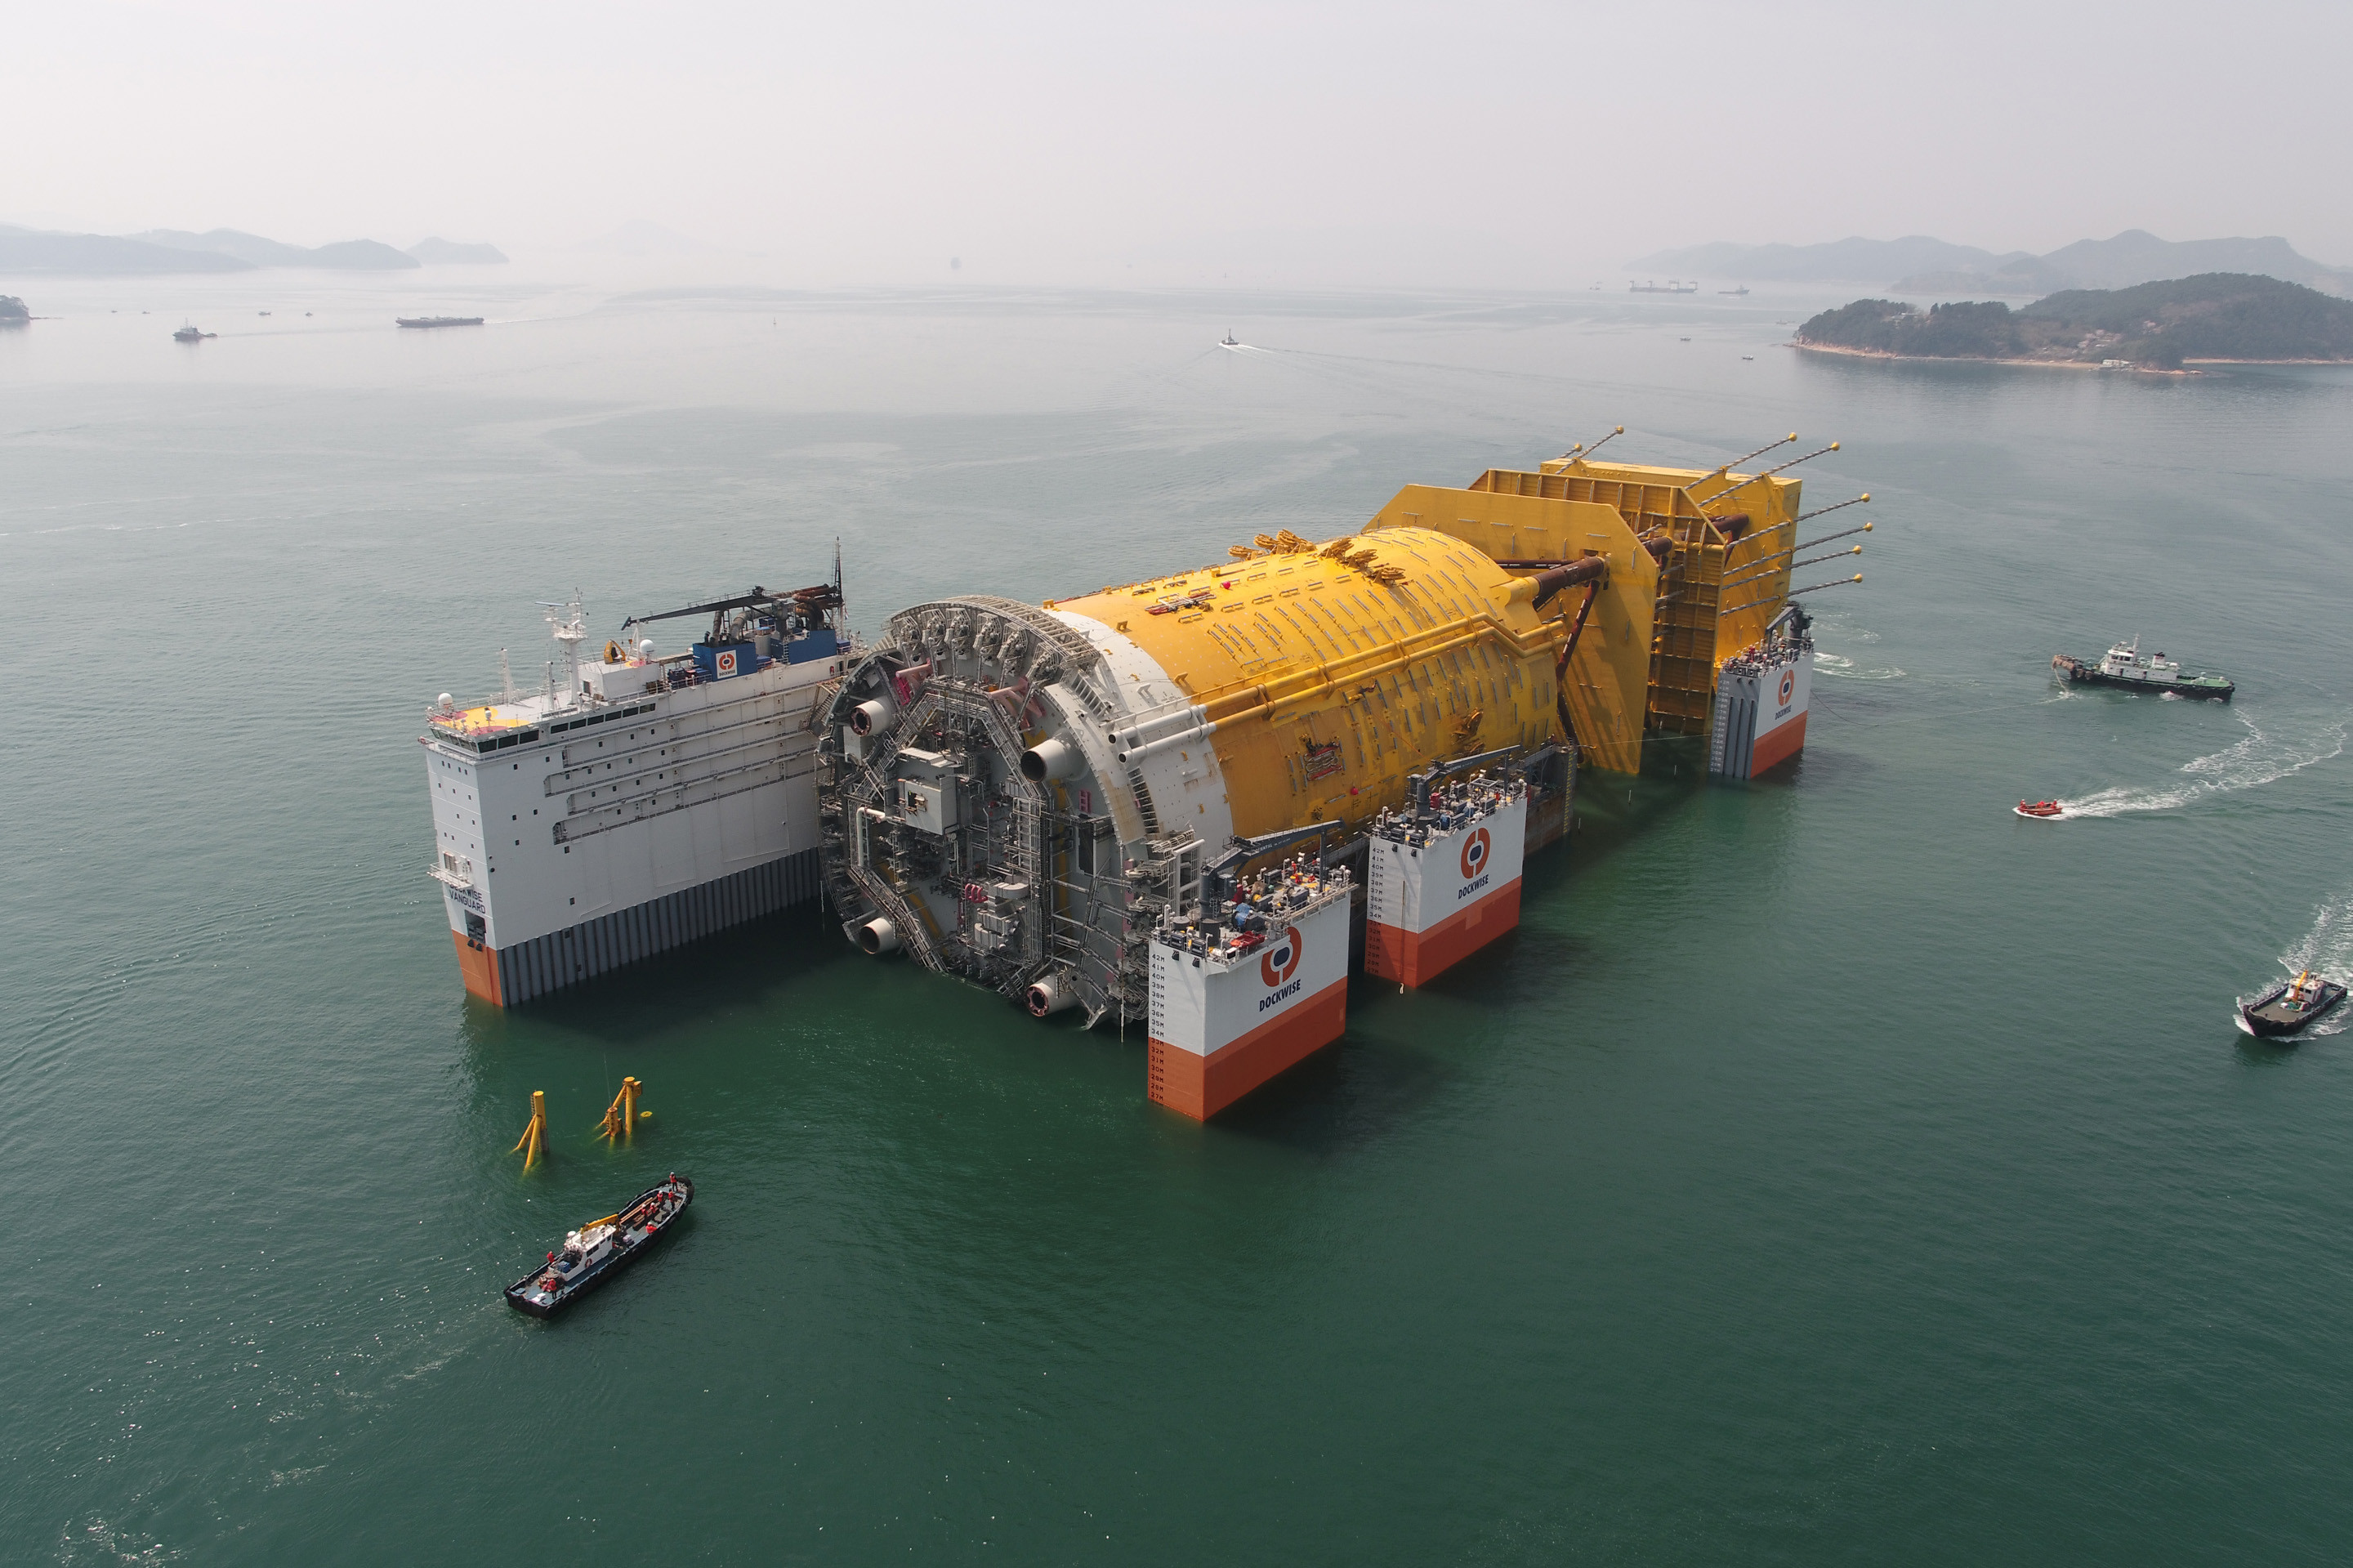 The Dockwise Vanguard transporting the world's largest spar platform Aasta Hansteen from South Korea to Norway